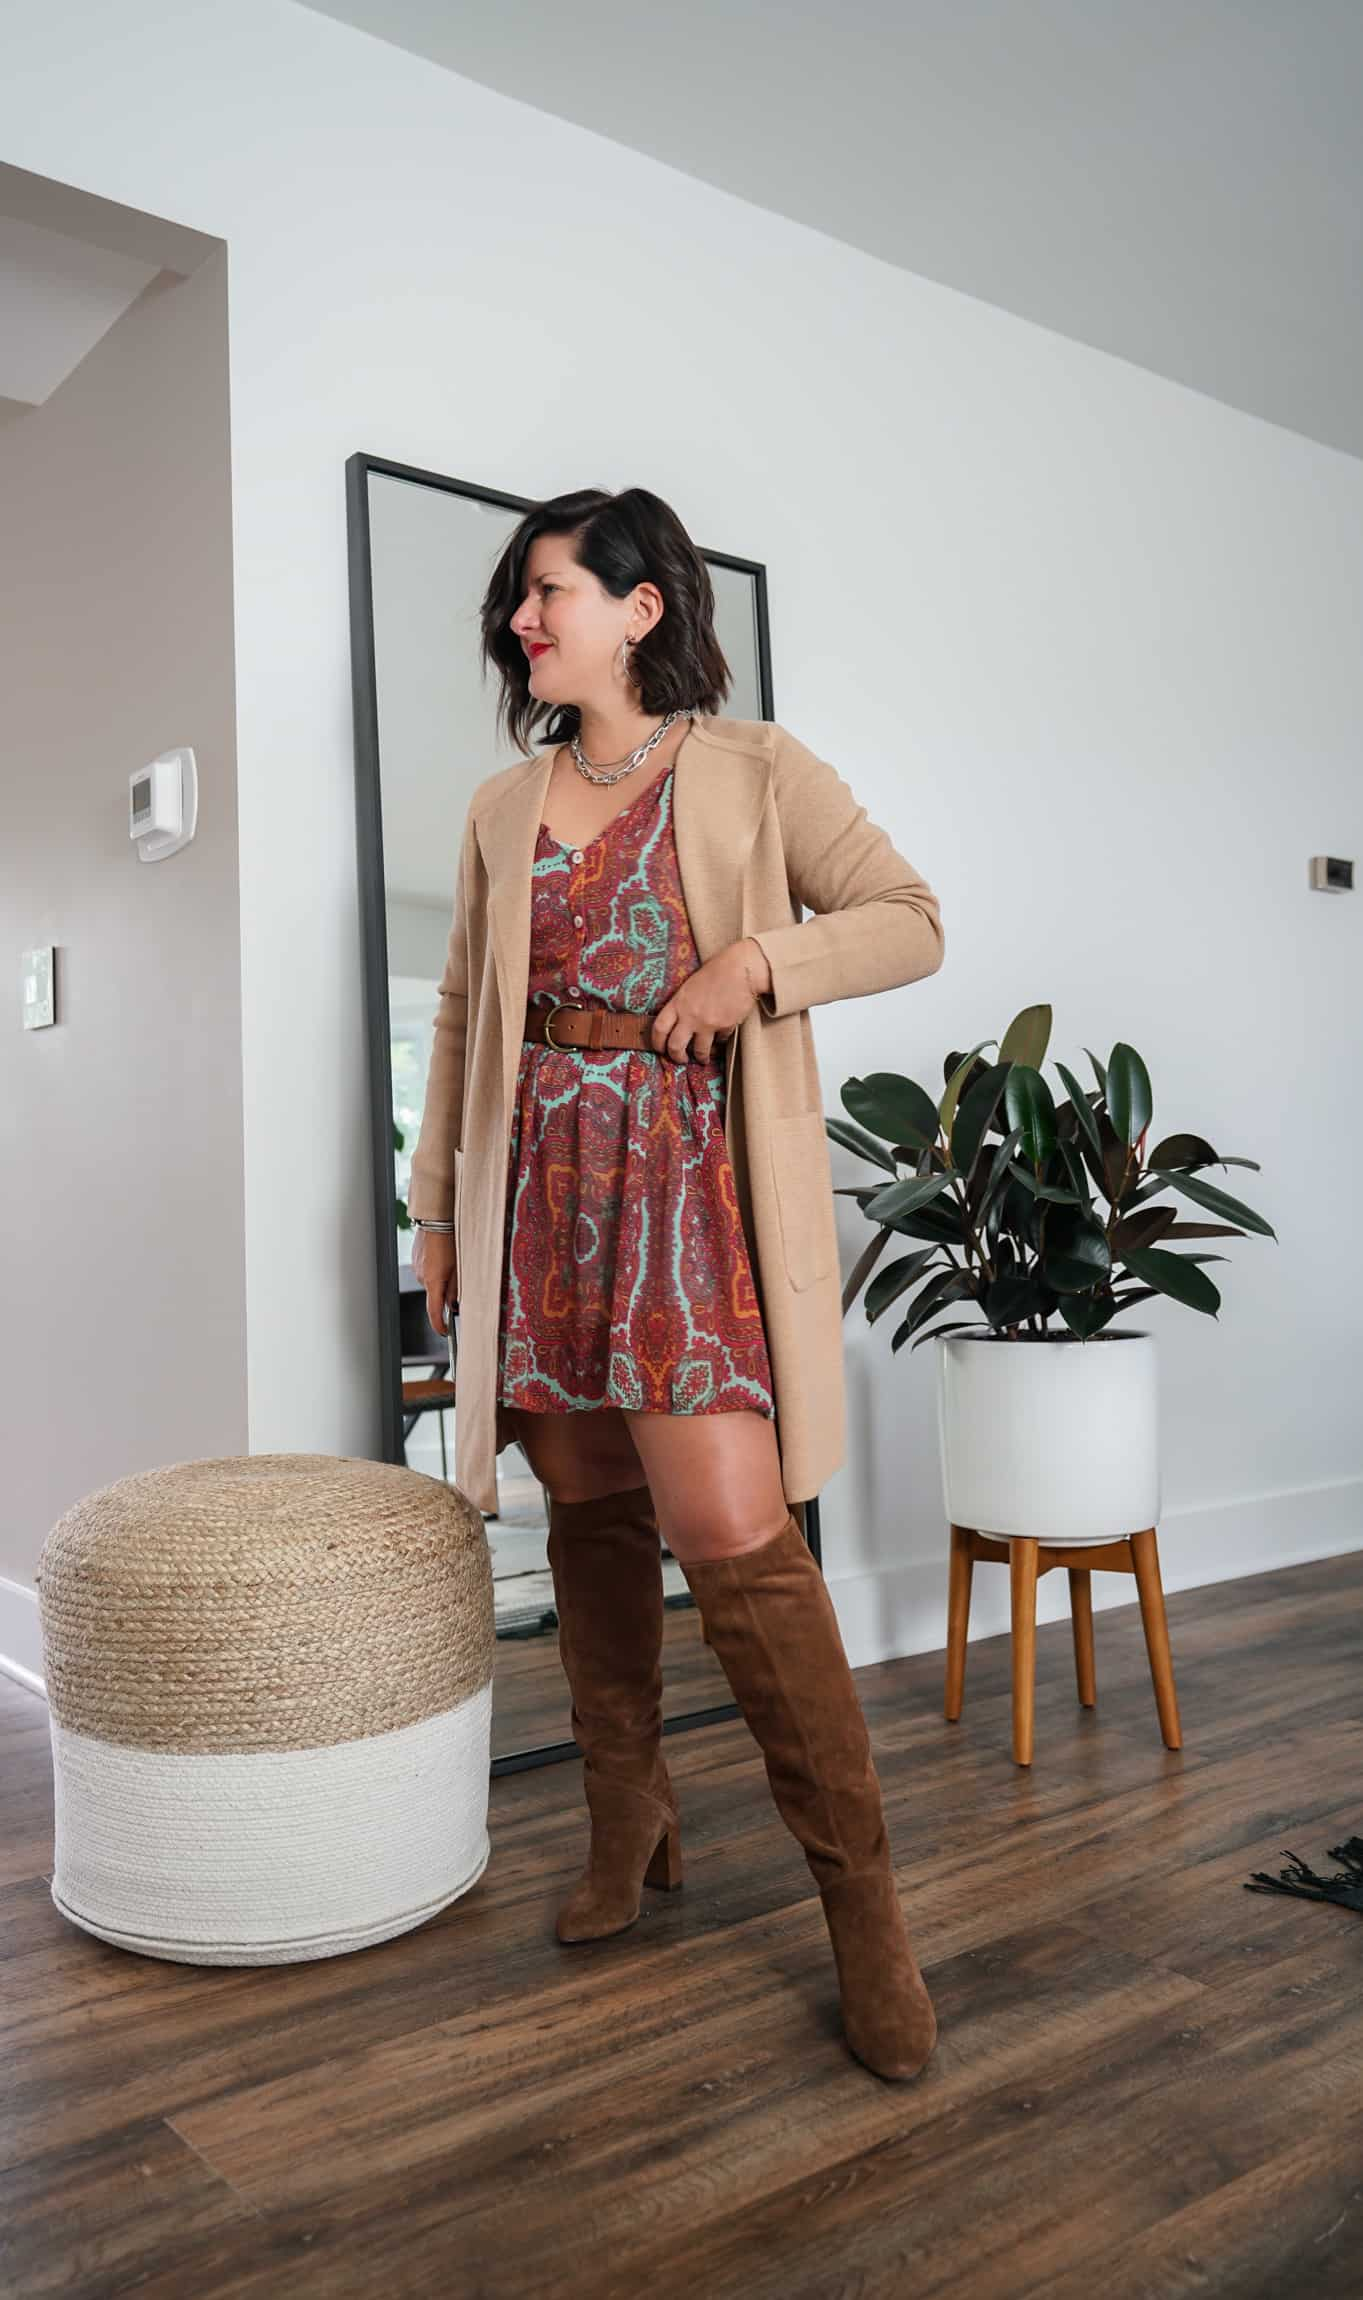 A Lily Love Affair shares how to wear a long cardigan with fall dress and brown knee high boots